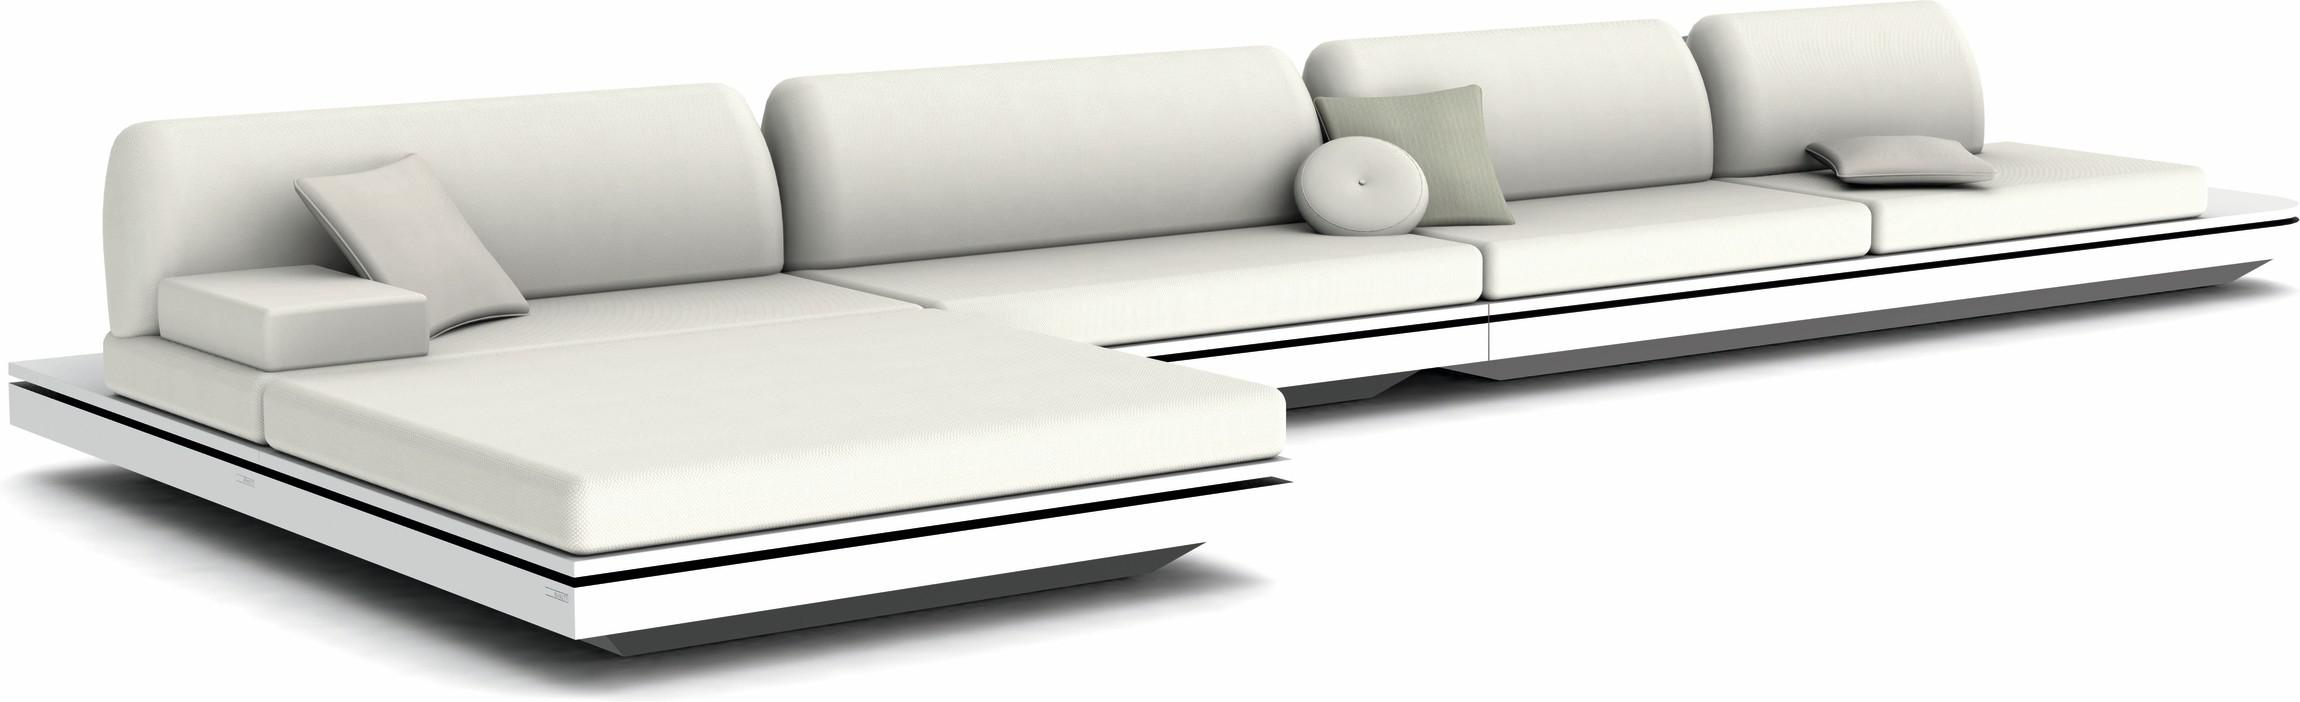 Elements concept 4 - blanc - coussins modernes